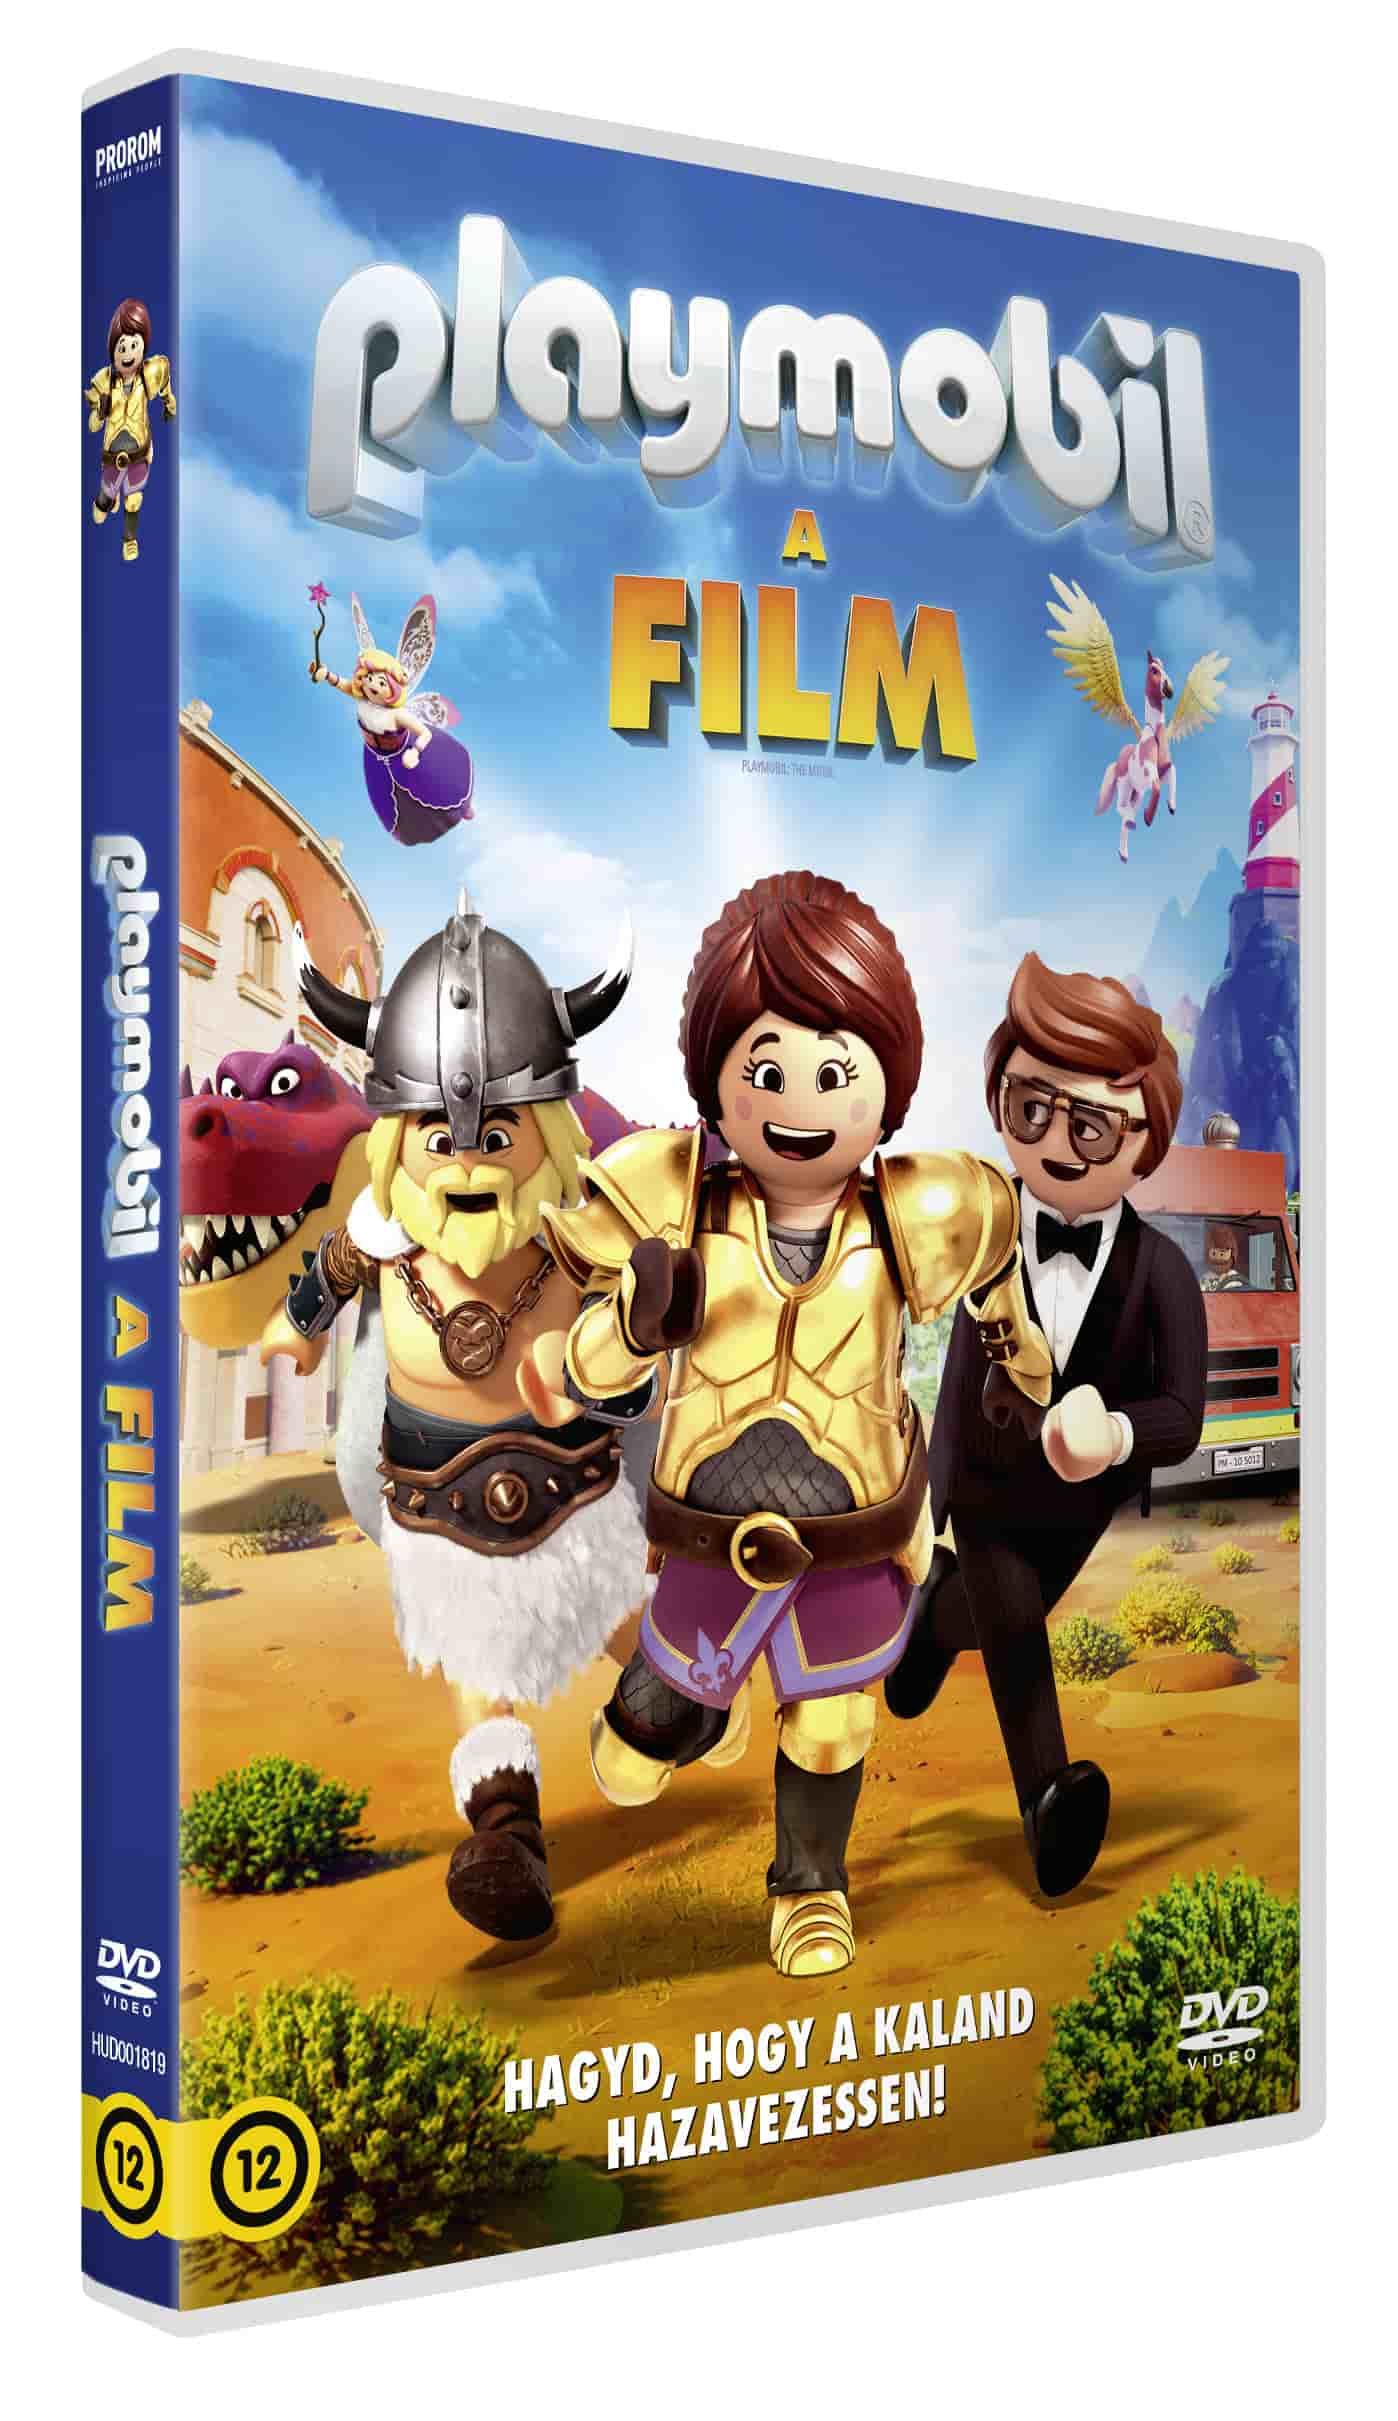 Playmobil: A Film - DVD